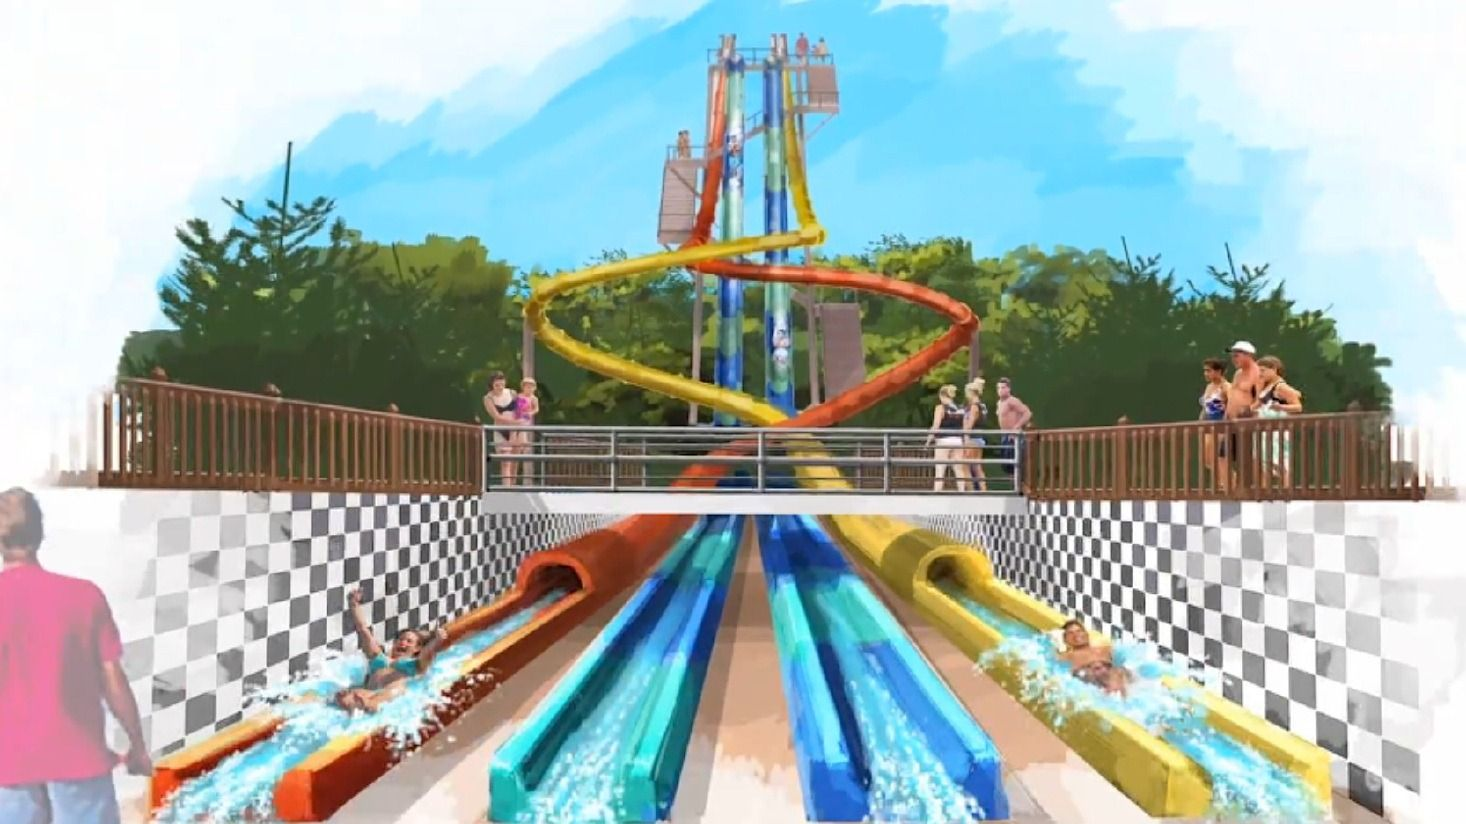 df8765234306cf254c2b7994857fe08f - Busch Gardens And Water Country Usa Tickets